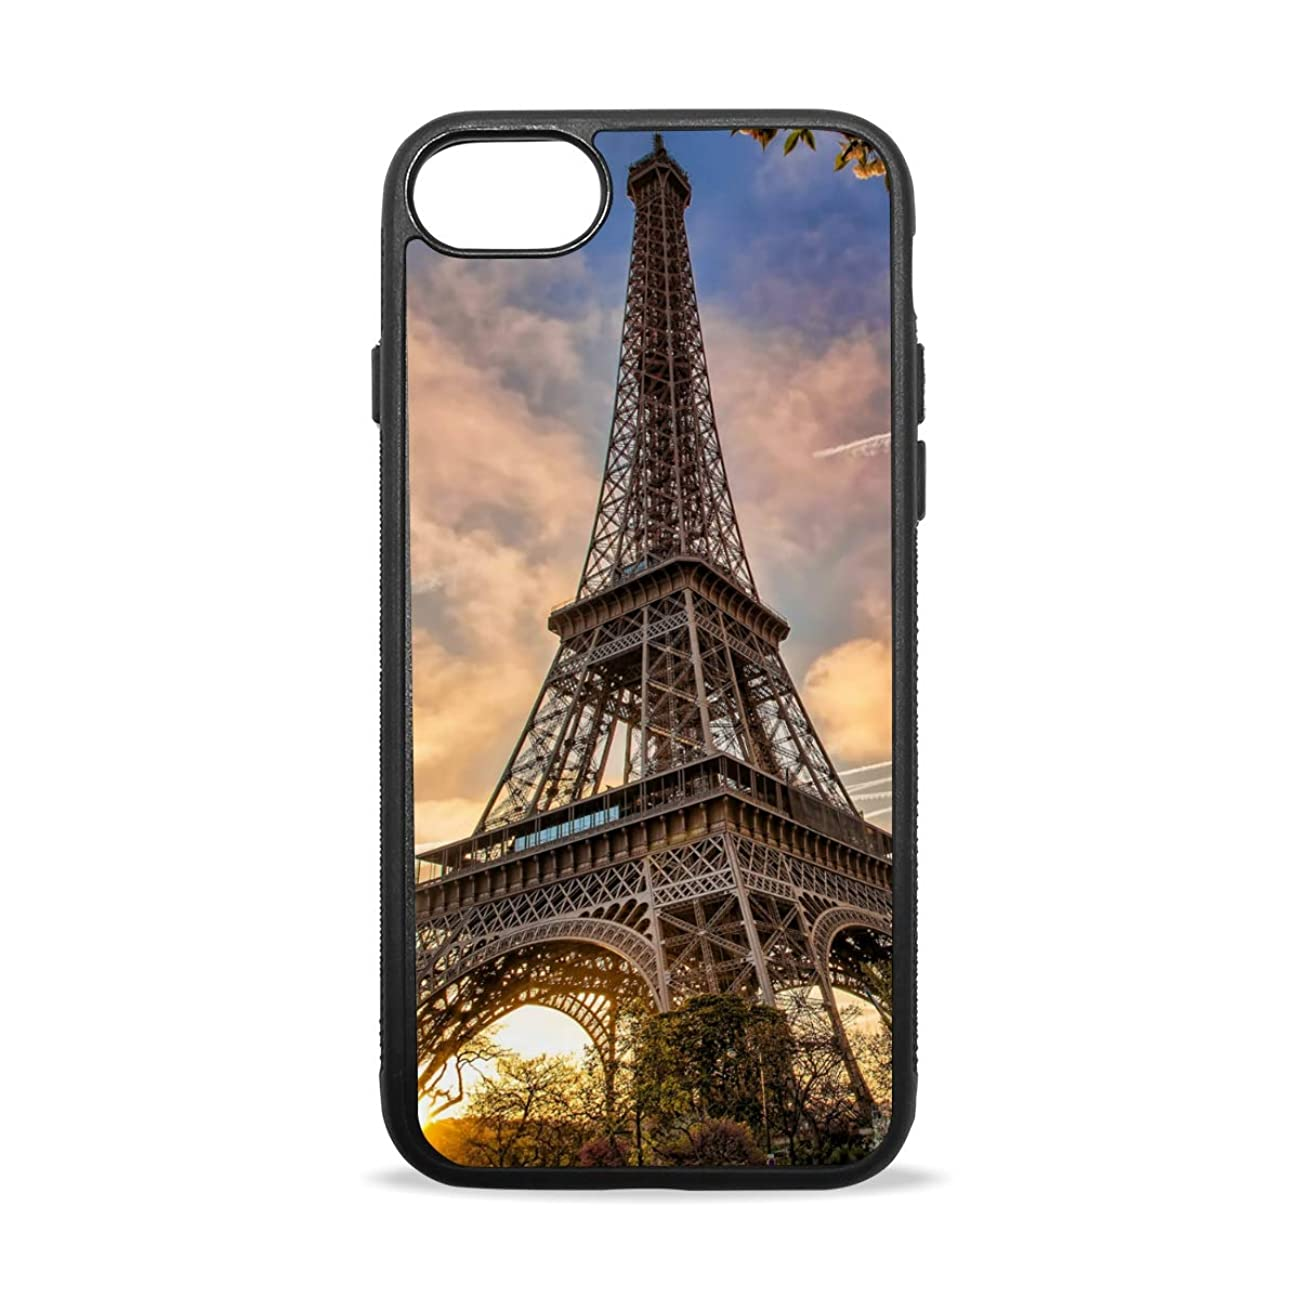 Apple Case Shockproof Slim TPU Protective Cover Travel France Tower Soft Rubber Silicone Cover Phone Case Compatible with iPhone 7/8 iPhone 7/8 Plus [4.7 inch/5.5 inch]